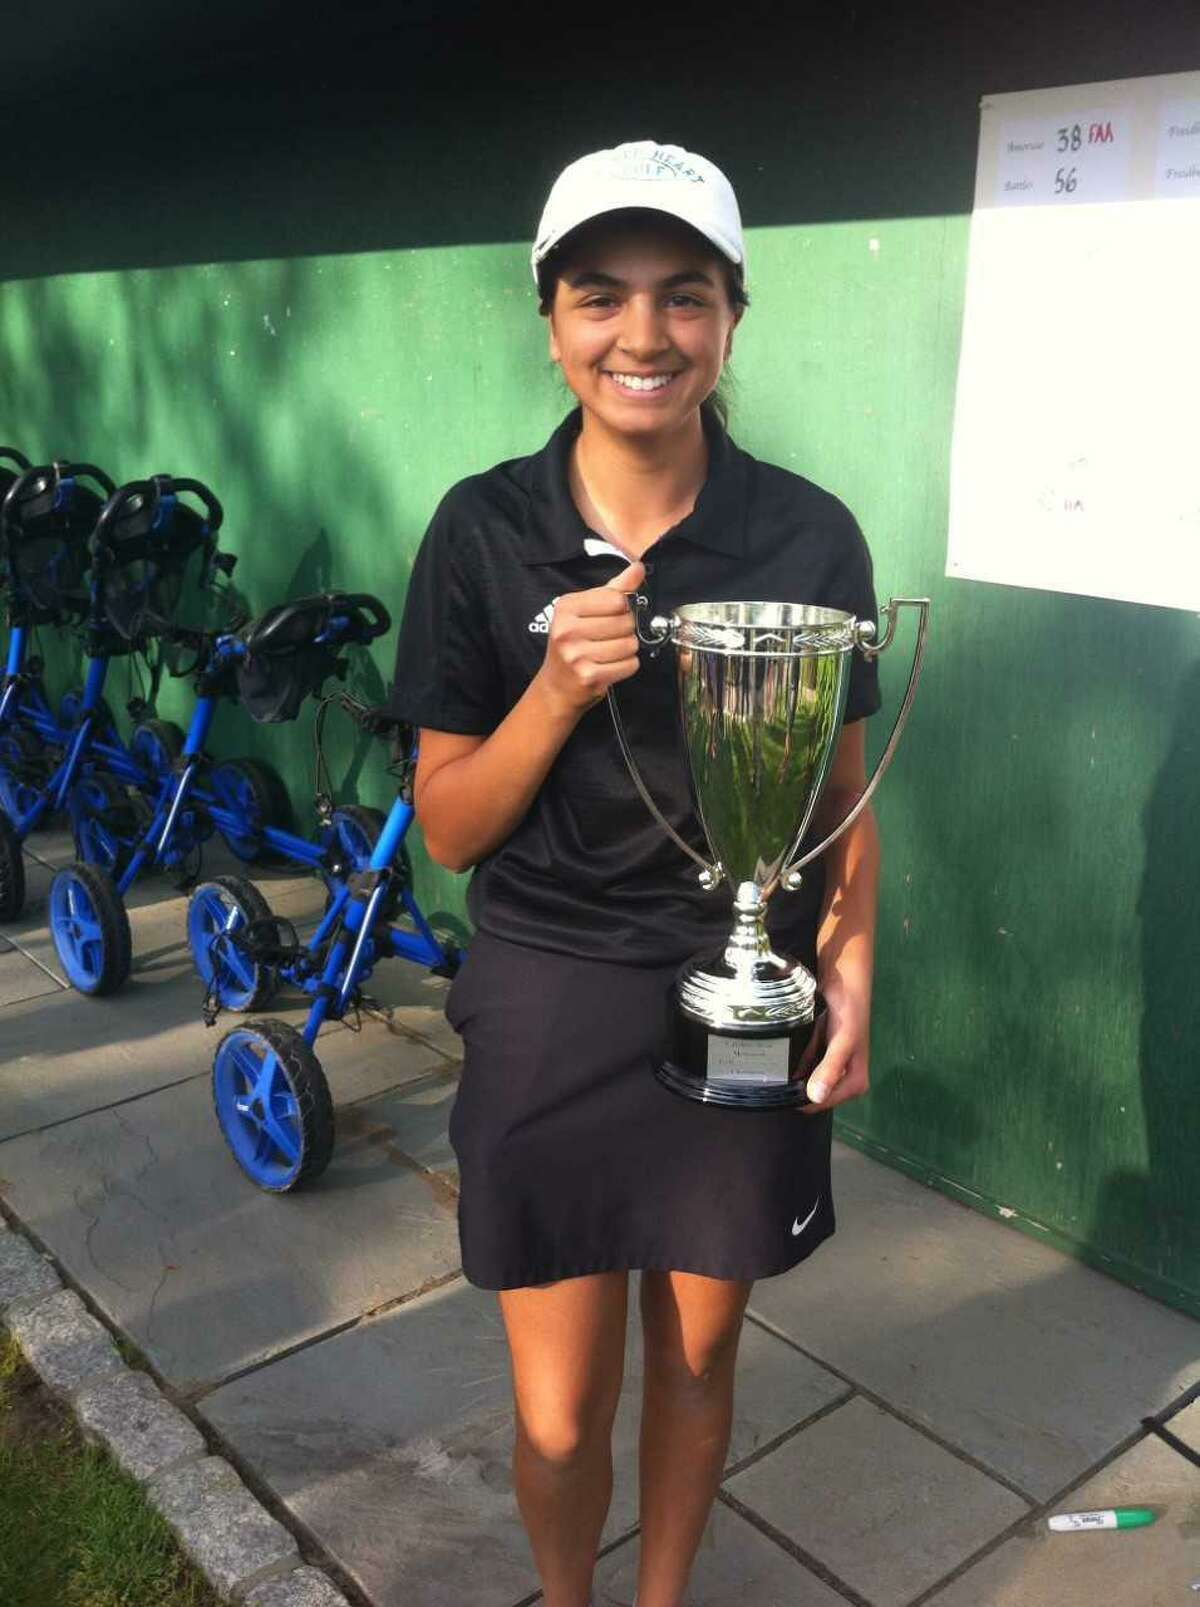 Lianna Amoruso of Sacred Heart won the Caroline Dym Memorial Golf Tournament Monday at Round Hill Club in Greenwich.